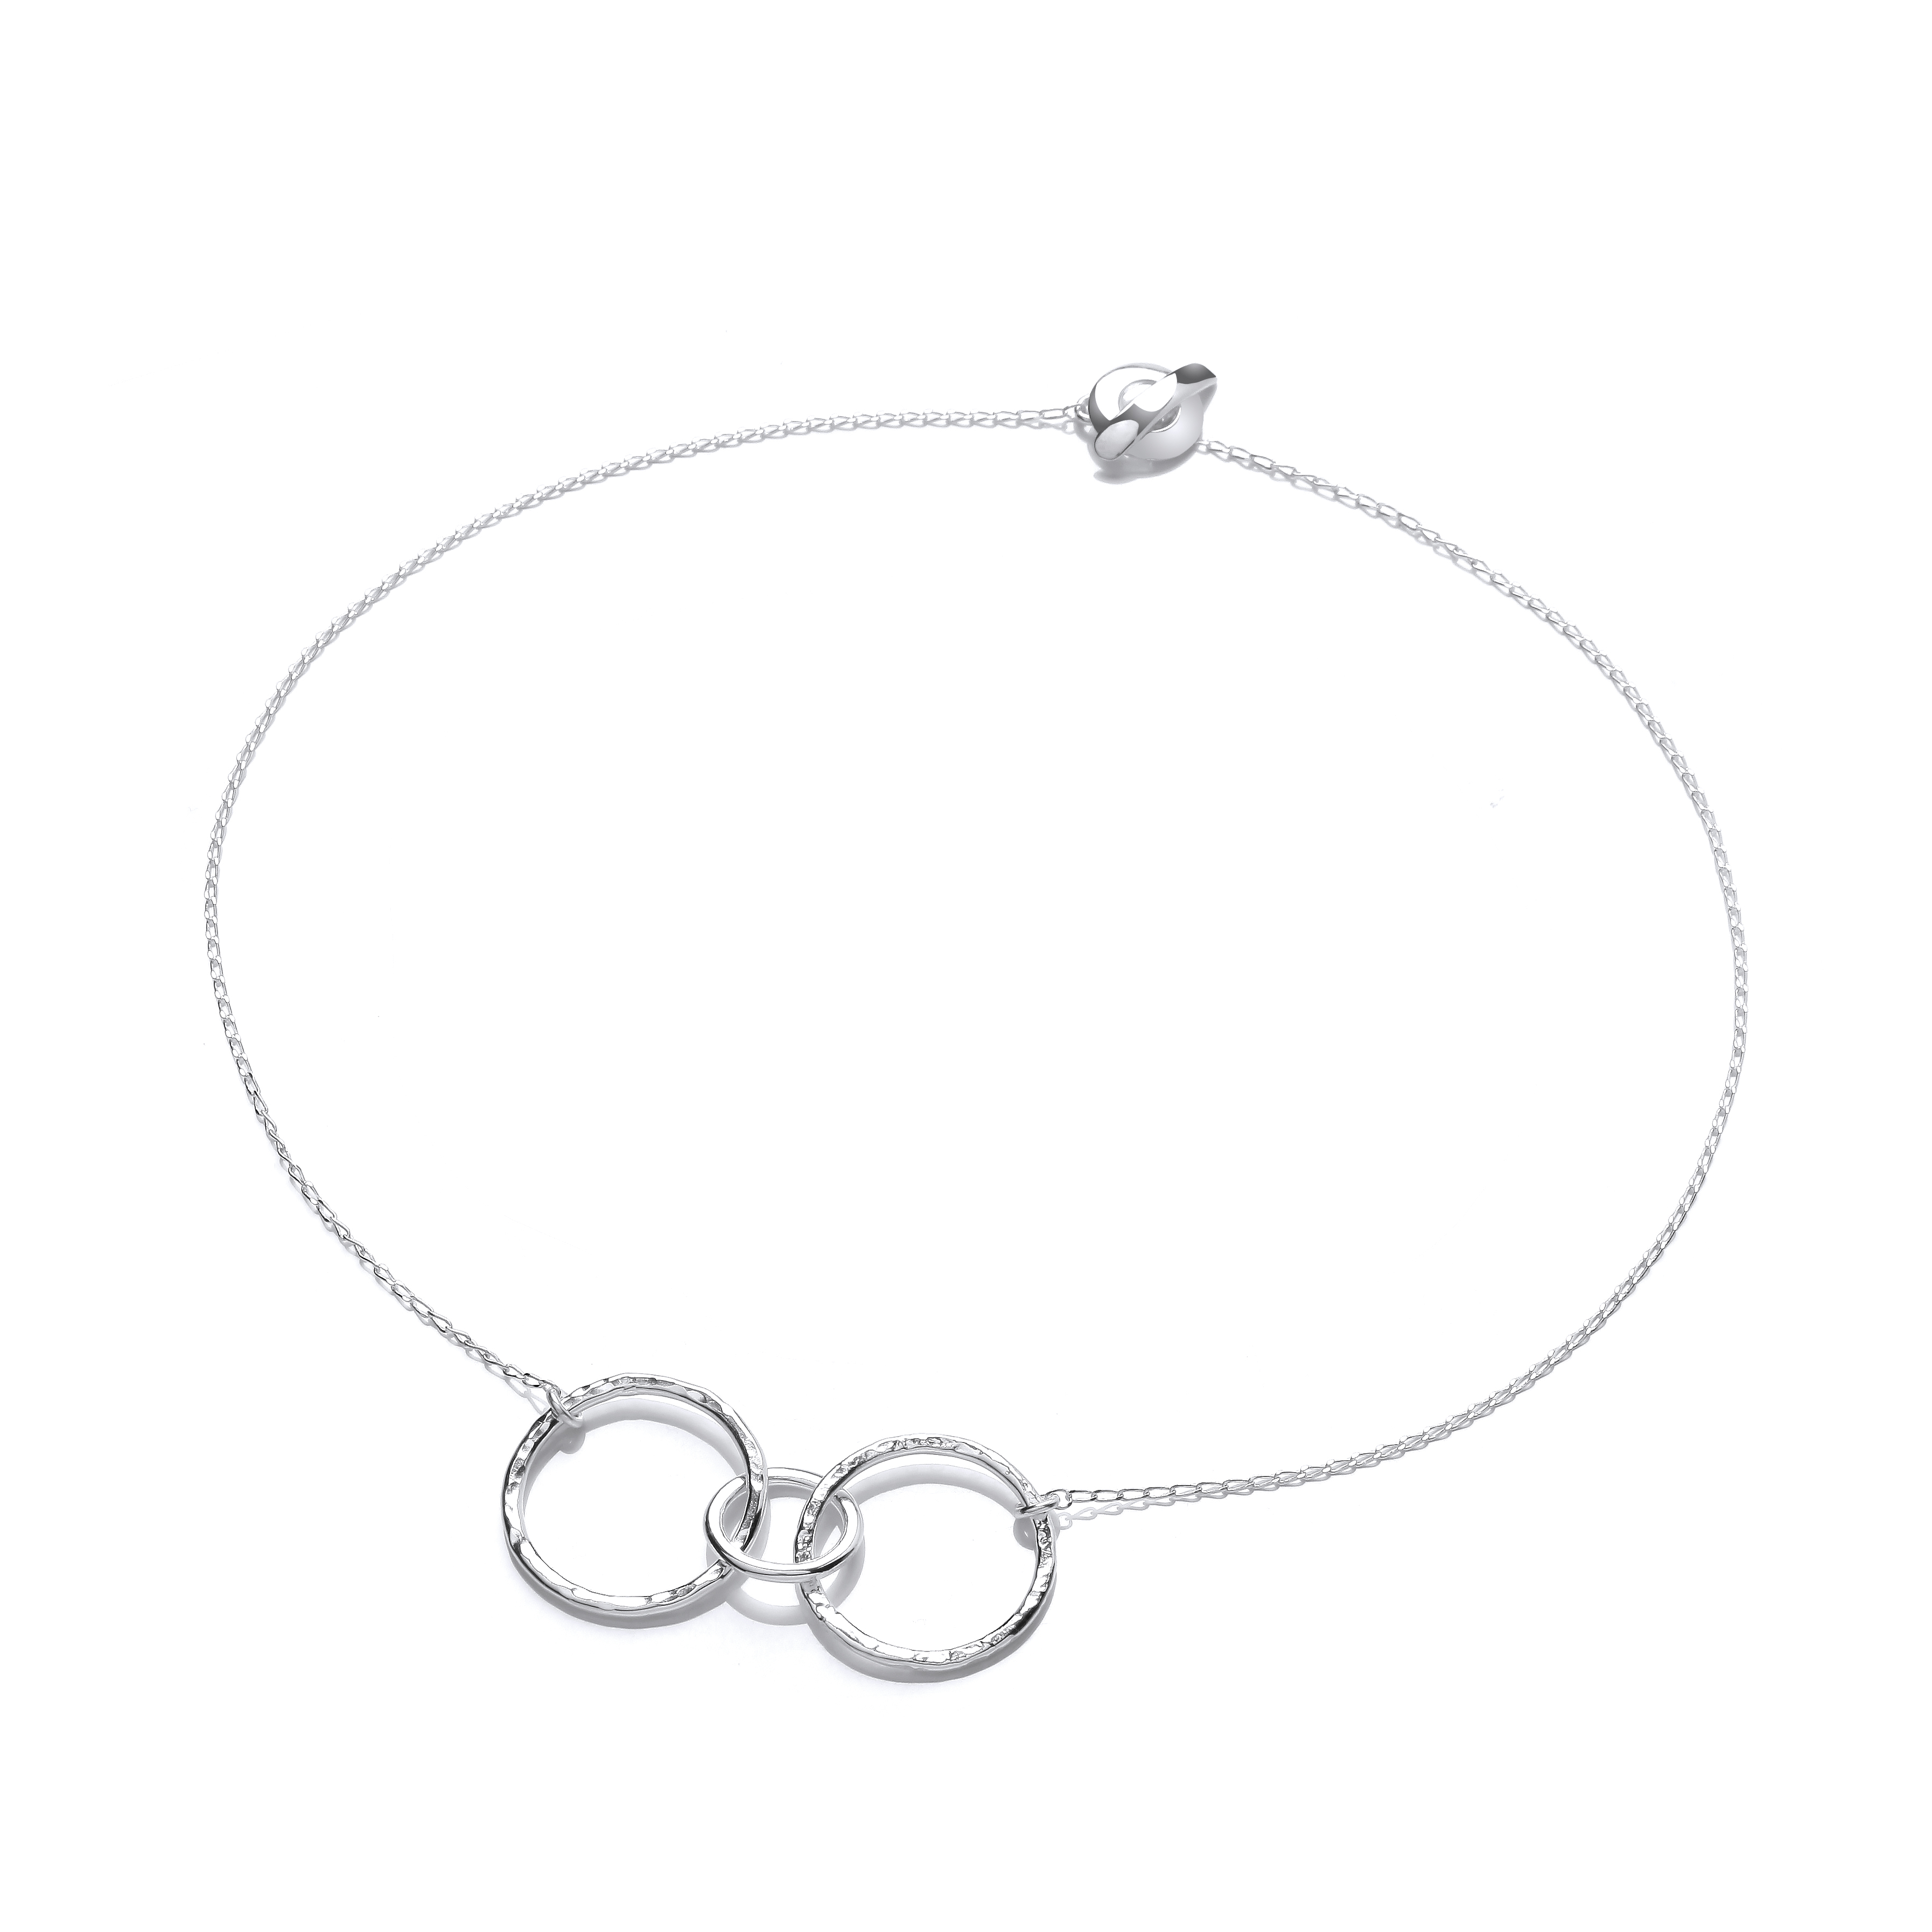 Sterling silver organice textured necklce